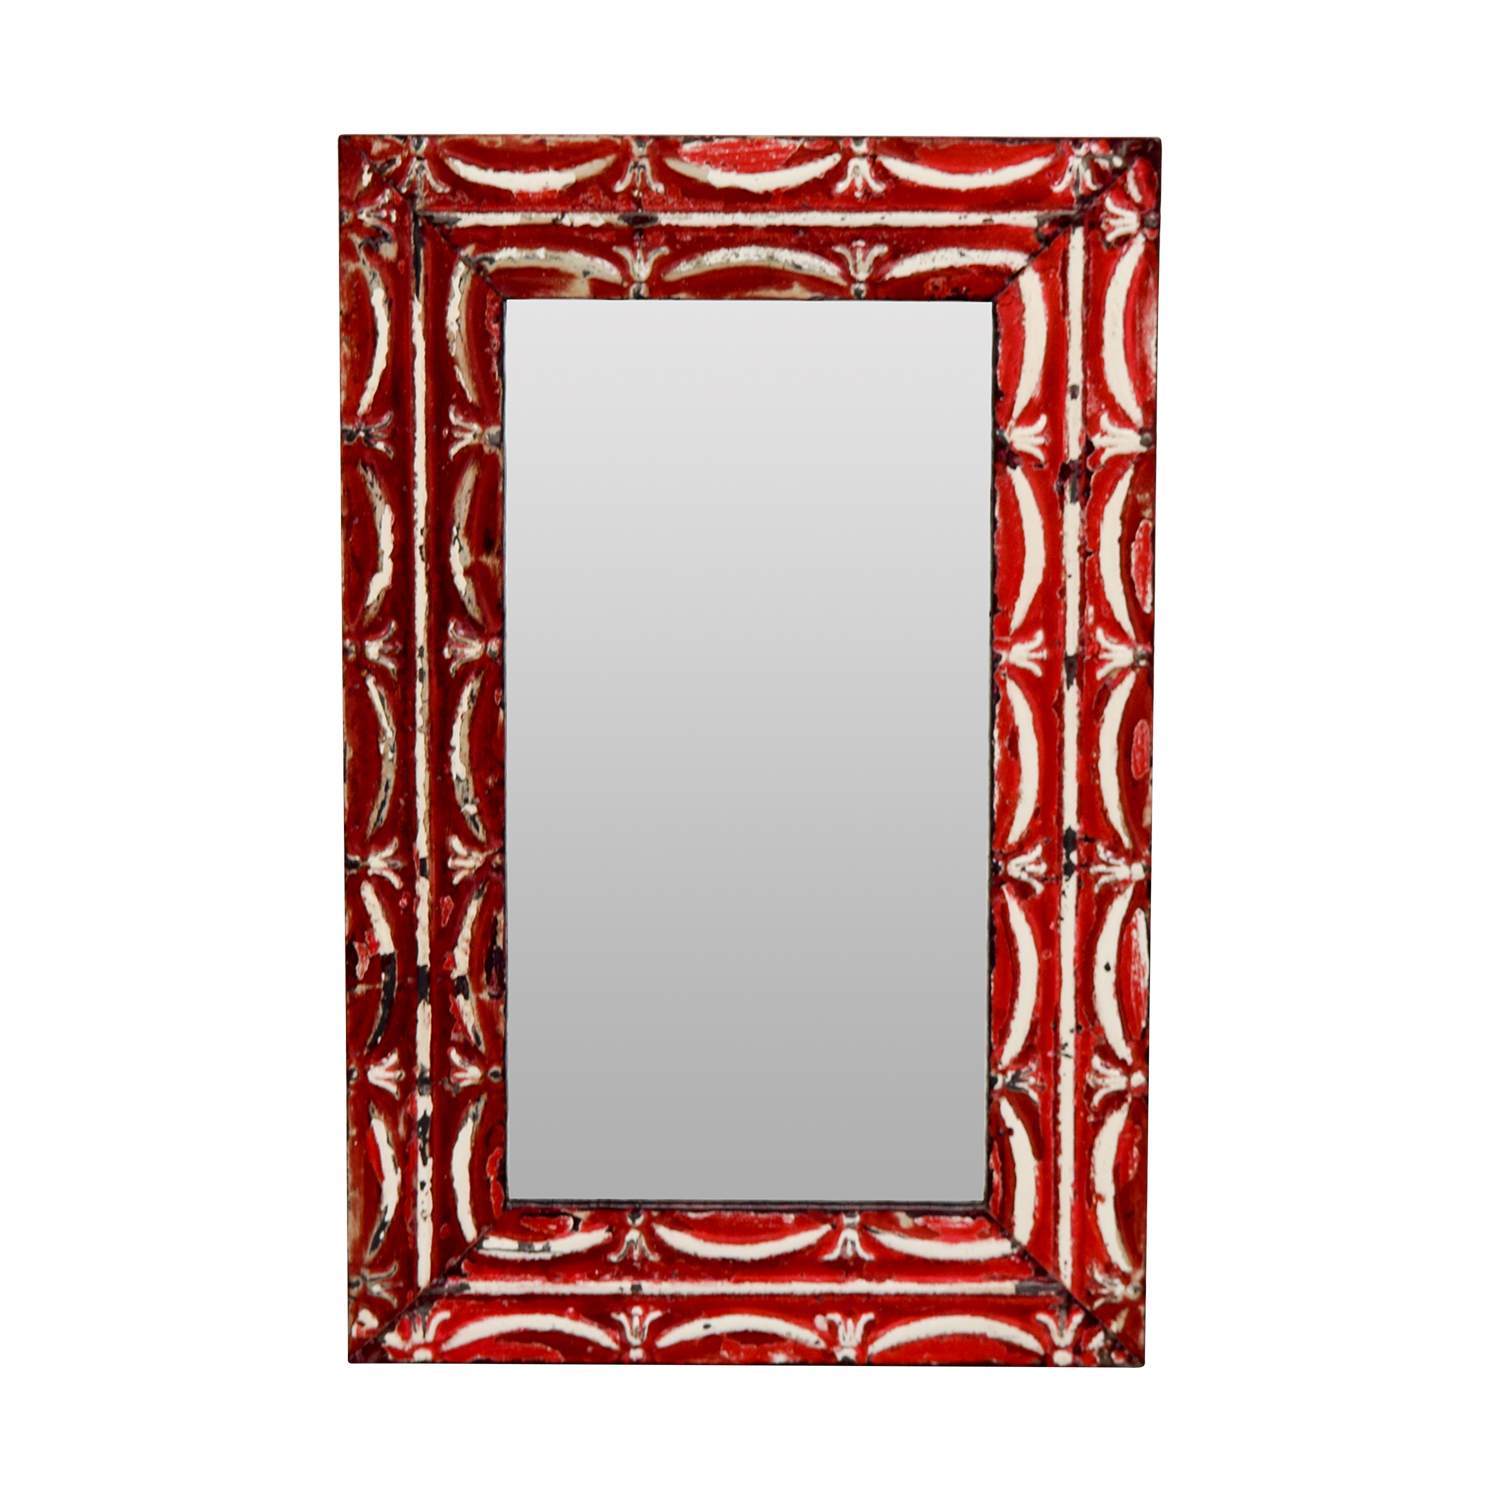 Olde Goode Things Olde Good Things Antique Red Tin Frame Mirror coupon